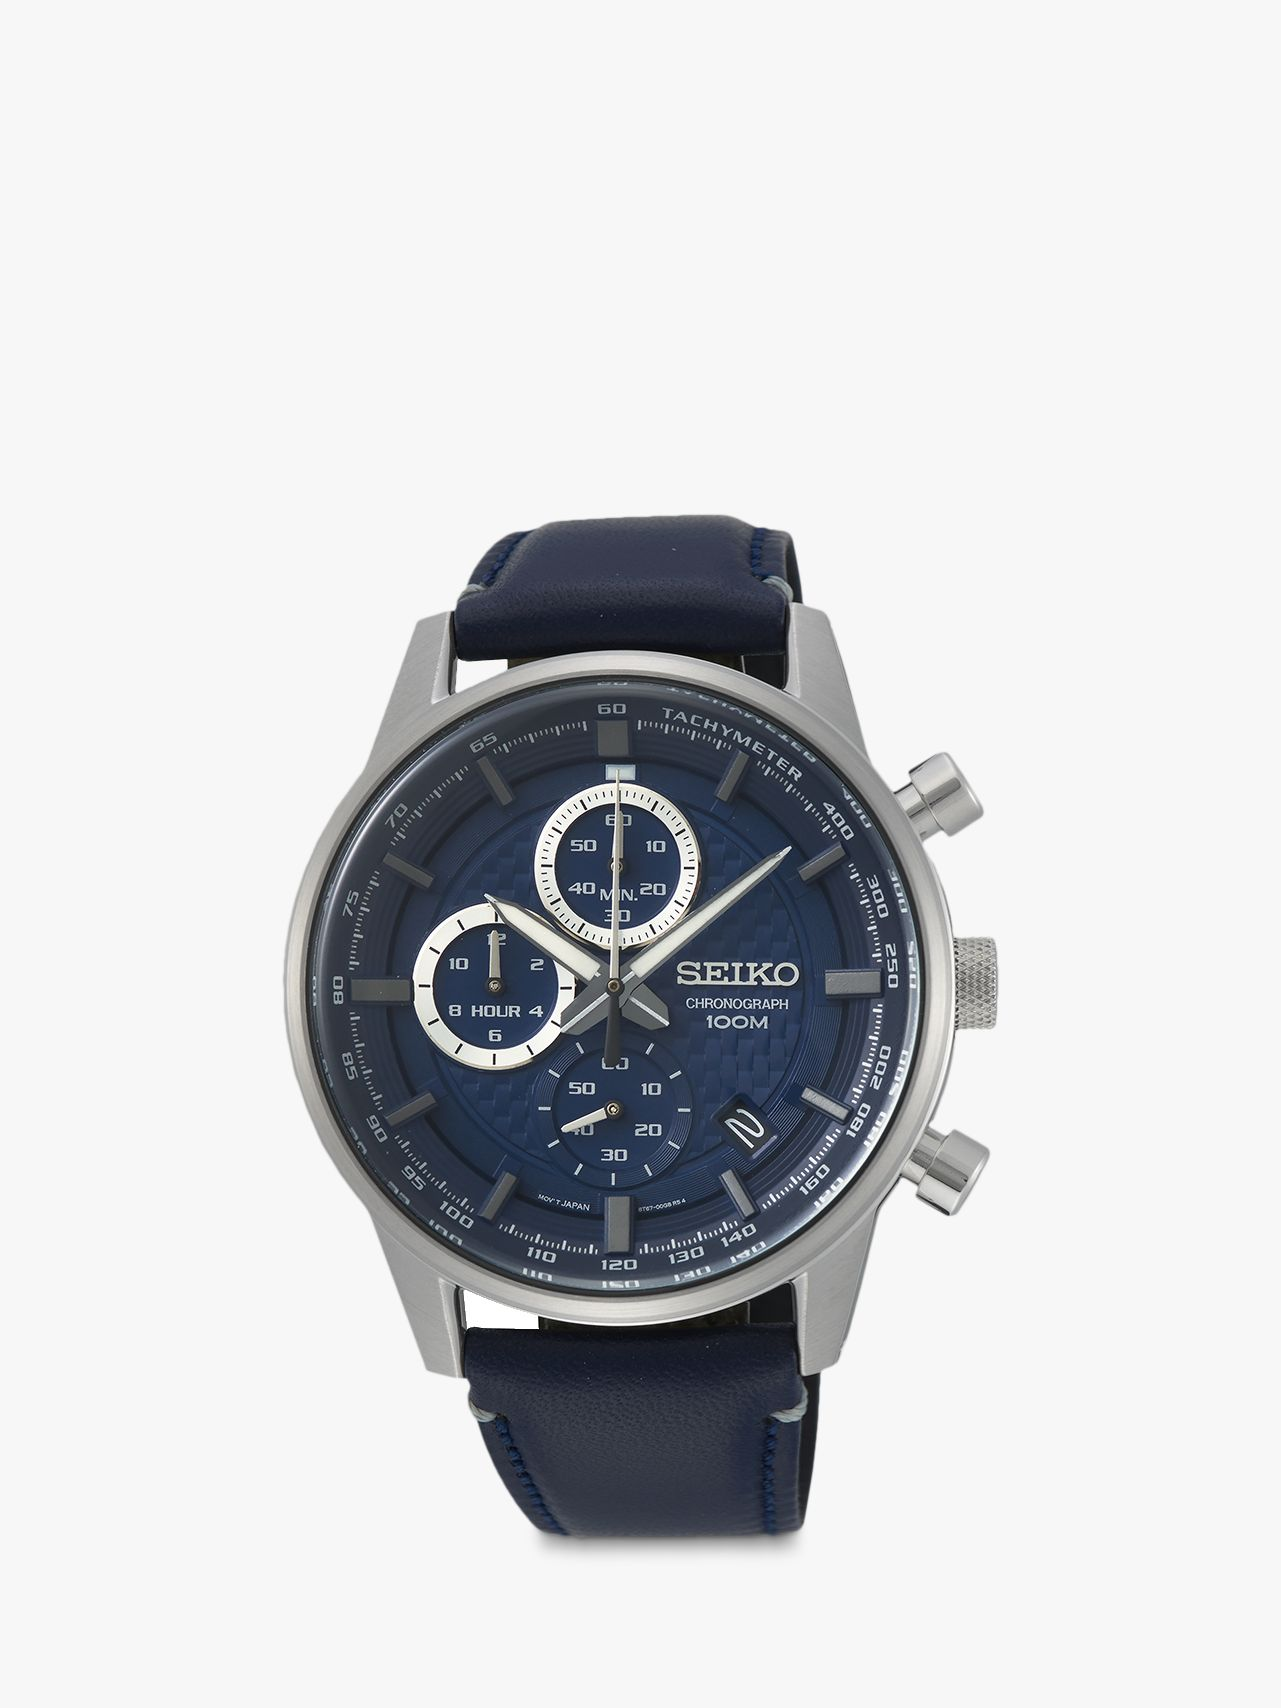 Seiko Seiko SSB333P1 Men's Chronograph Date Leather Strap Watch, Navy